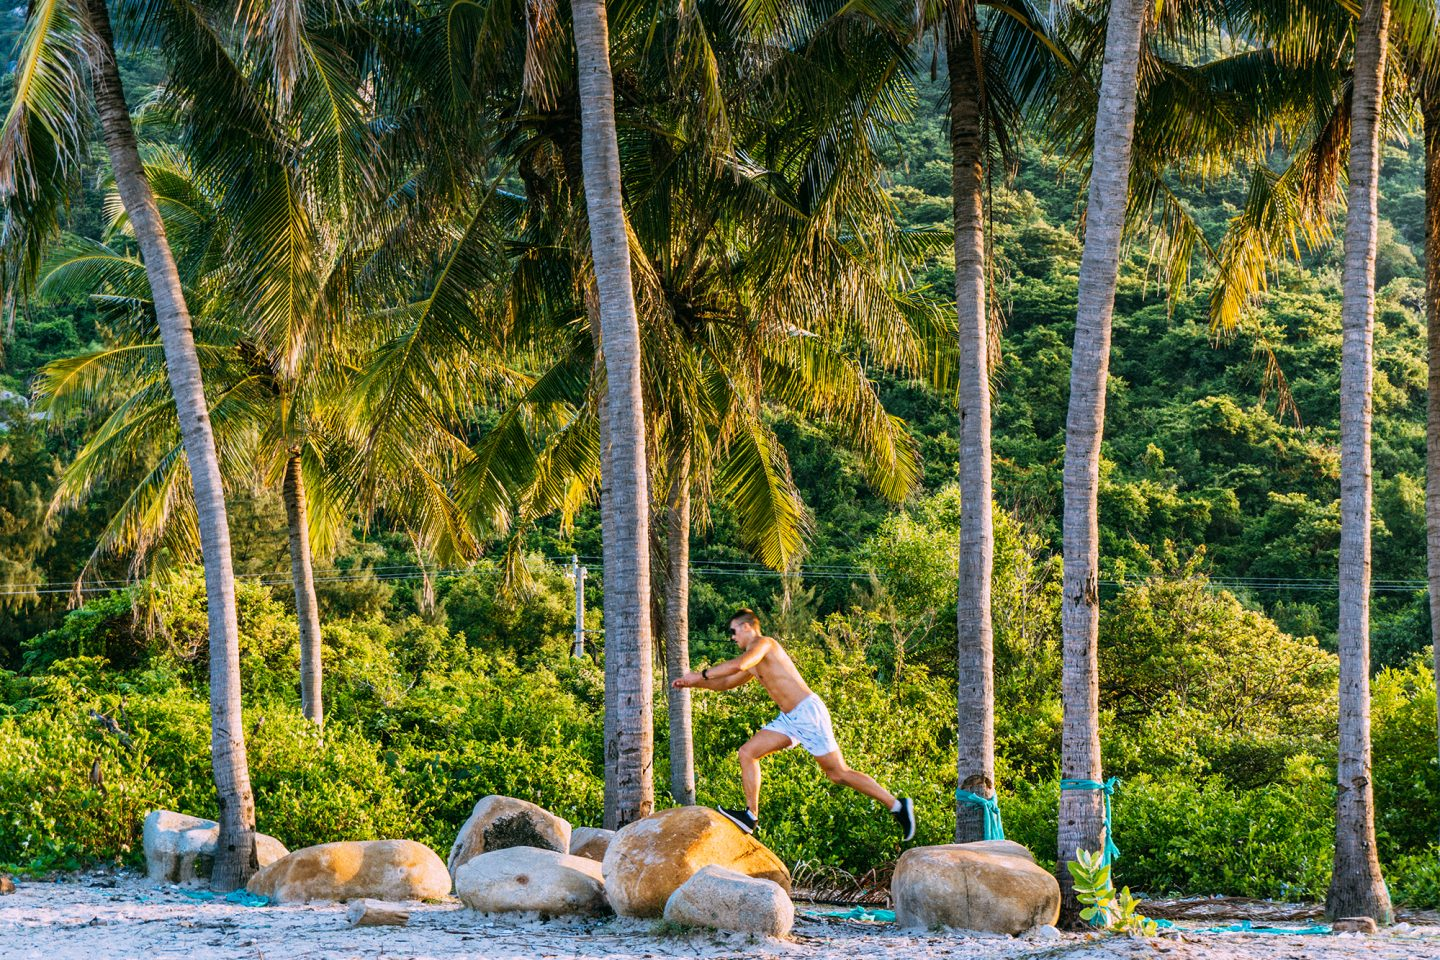 Man running and jumping from rock to rock at a beach. In the background one can see huge palm trees.